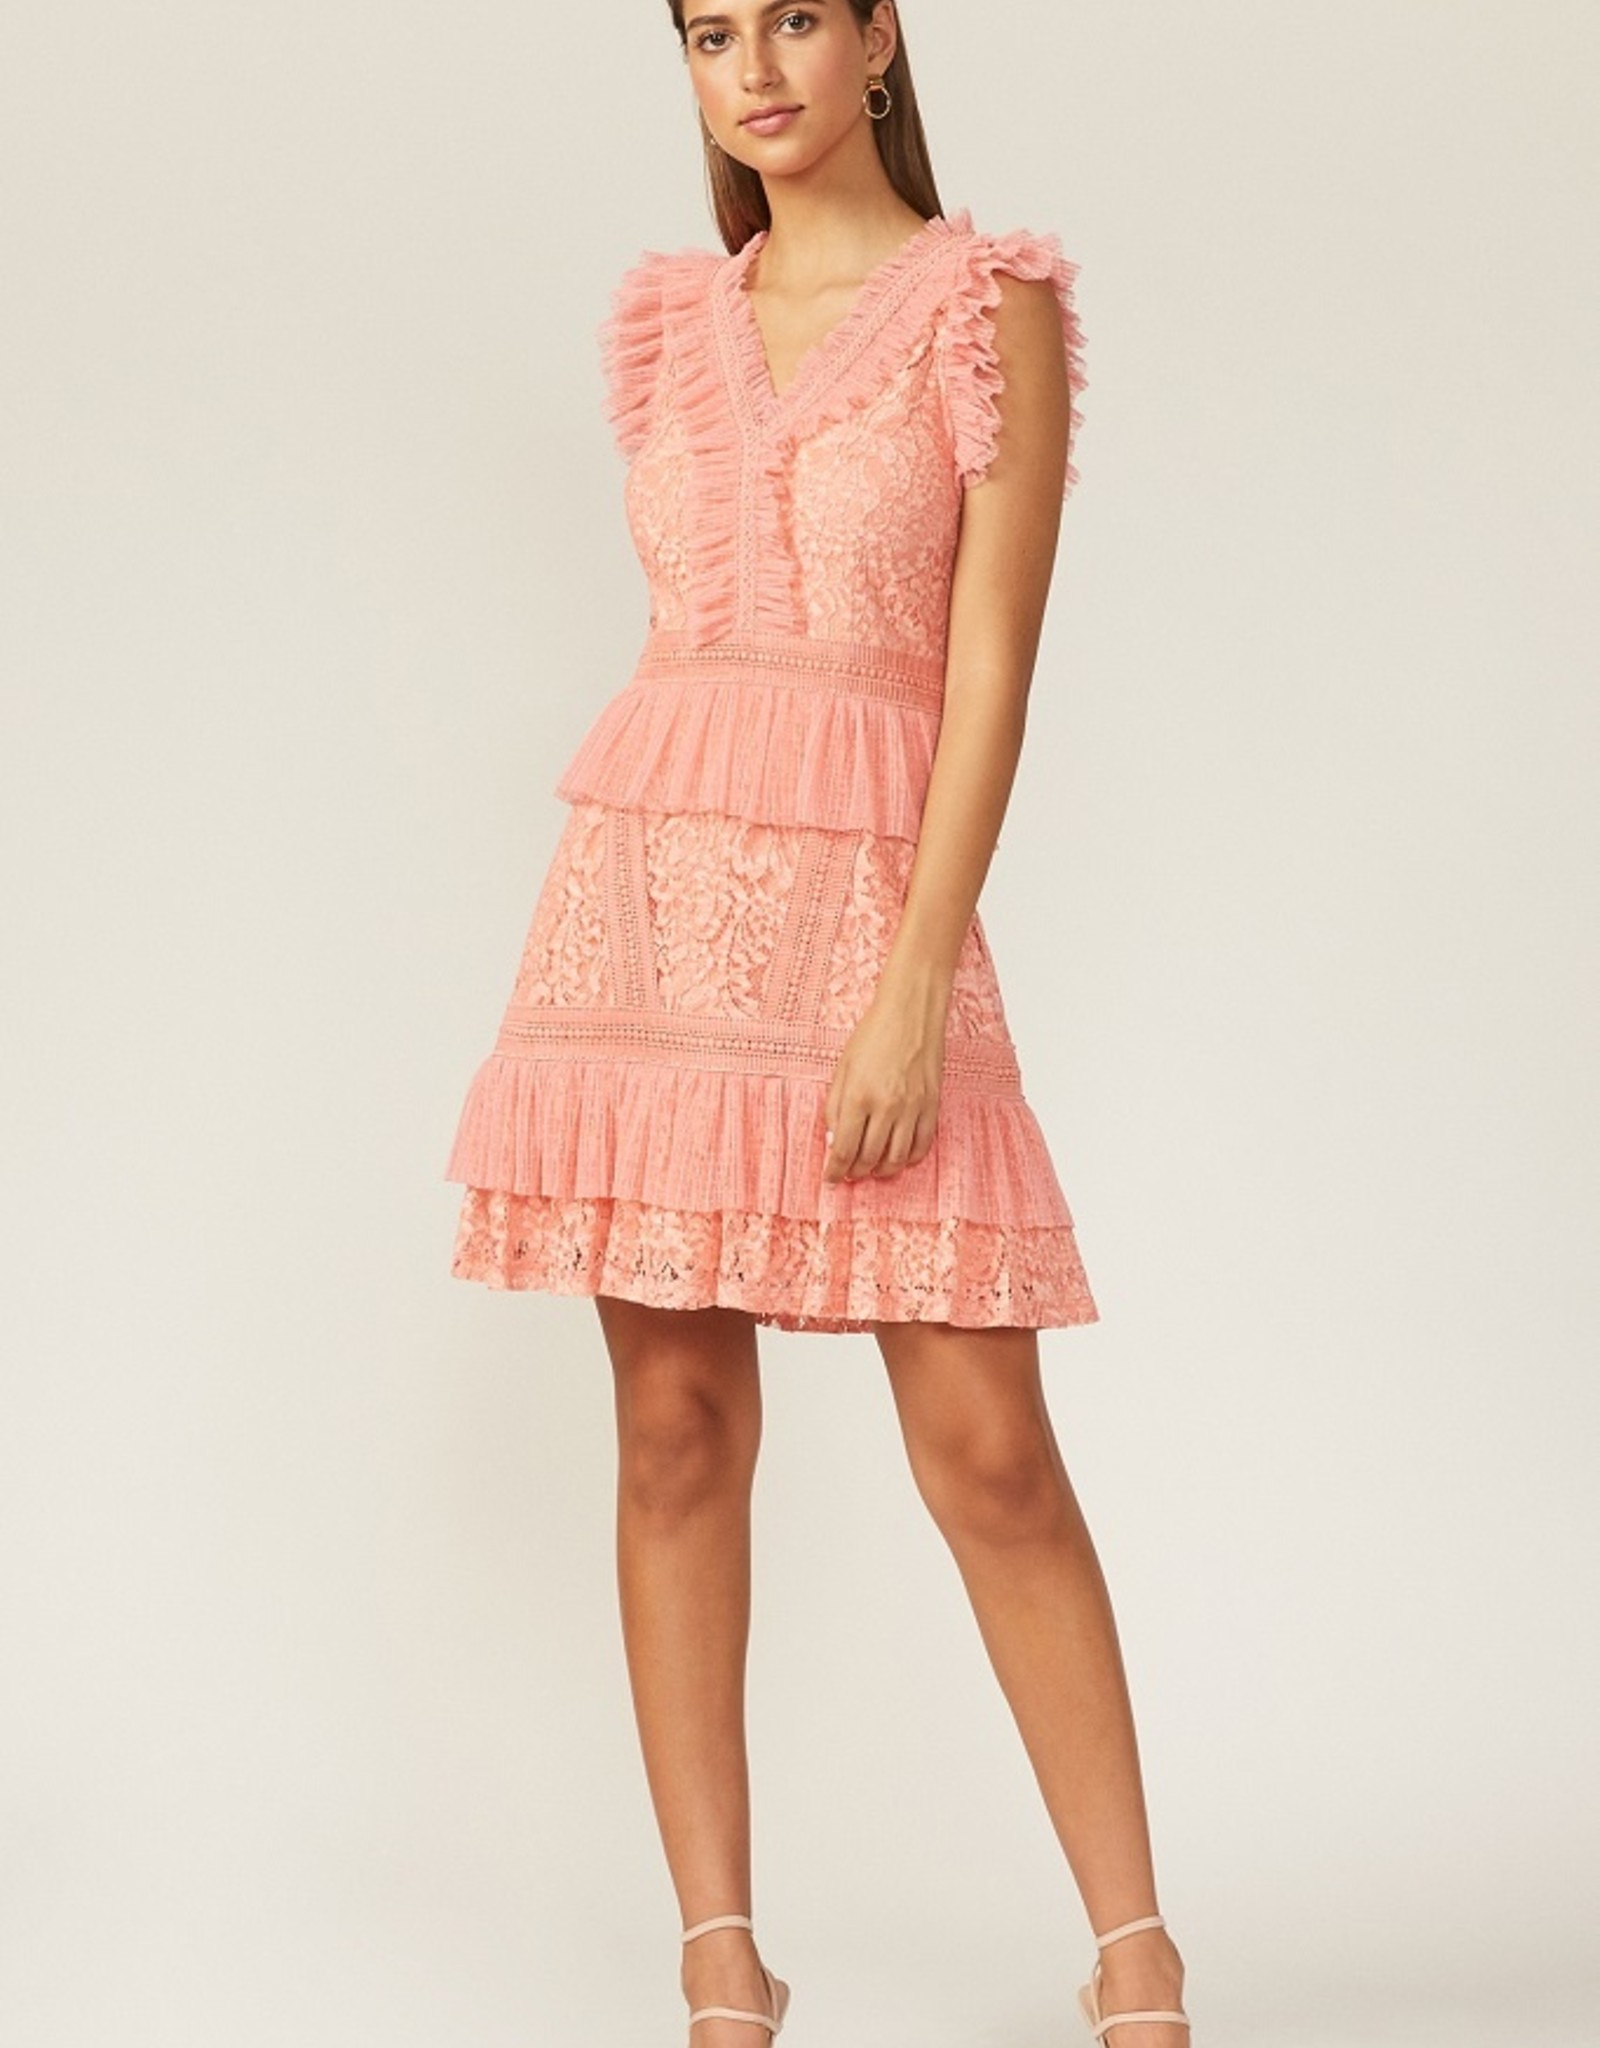 Adelyn Rae Aviana Lace Ruffle Mini Dress in Peach